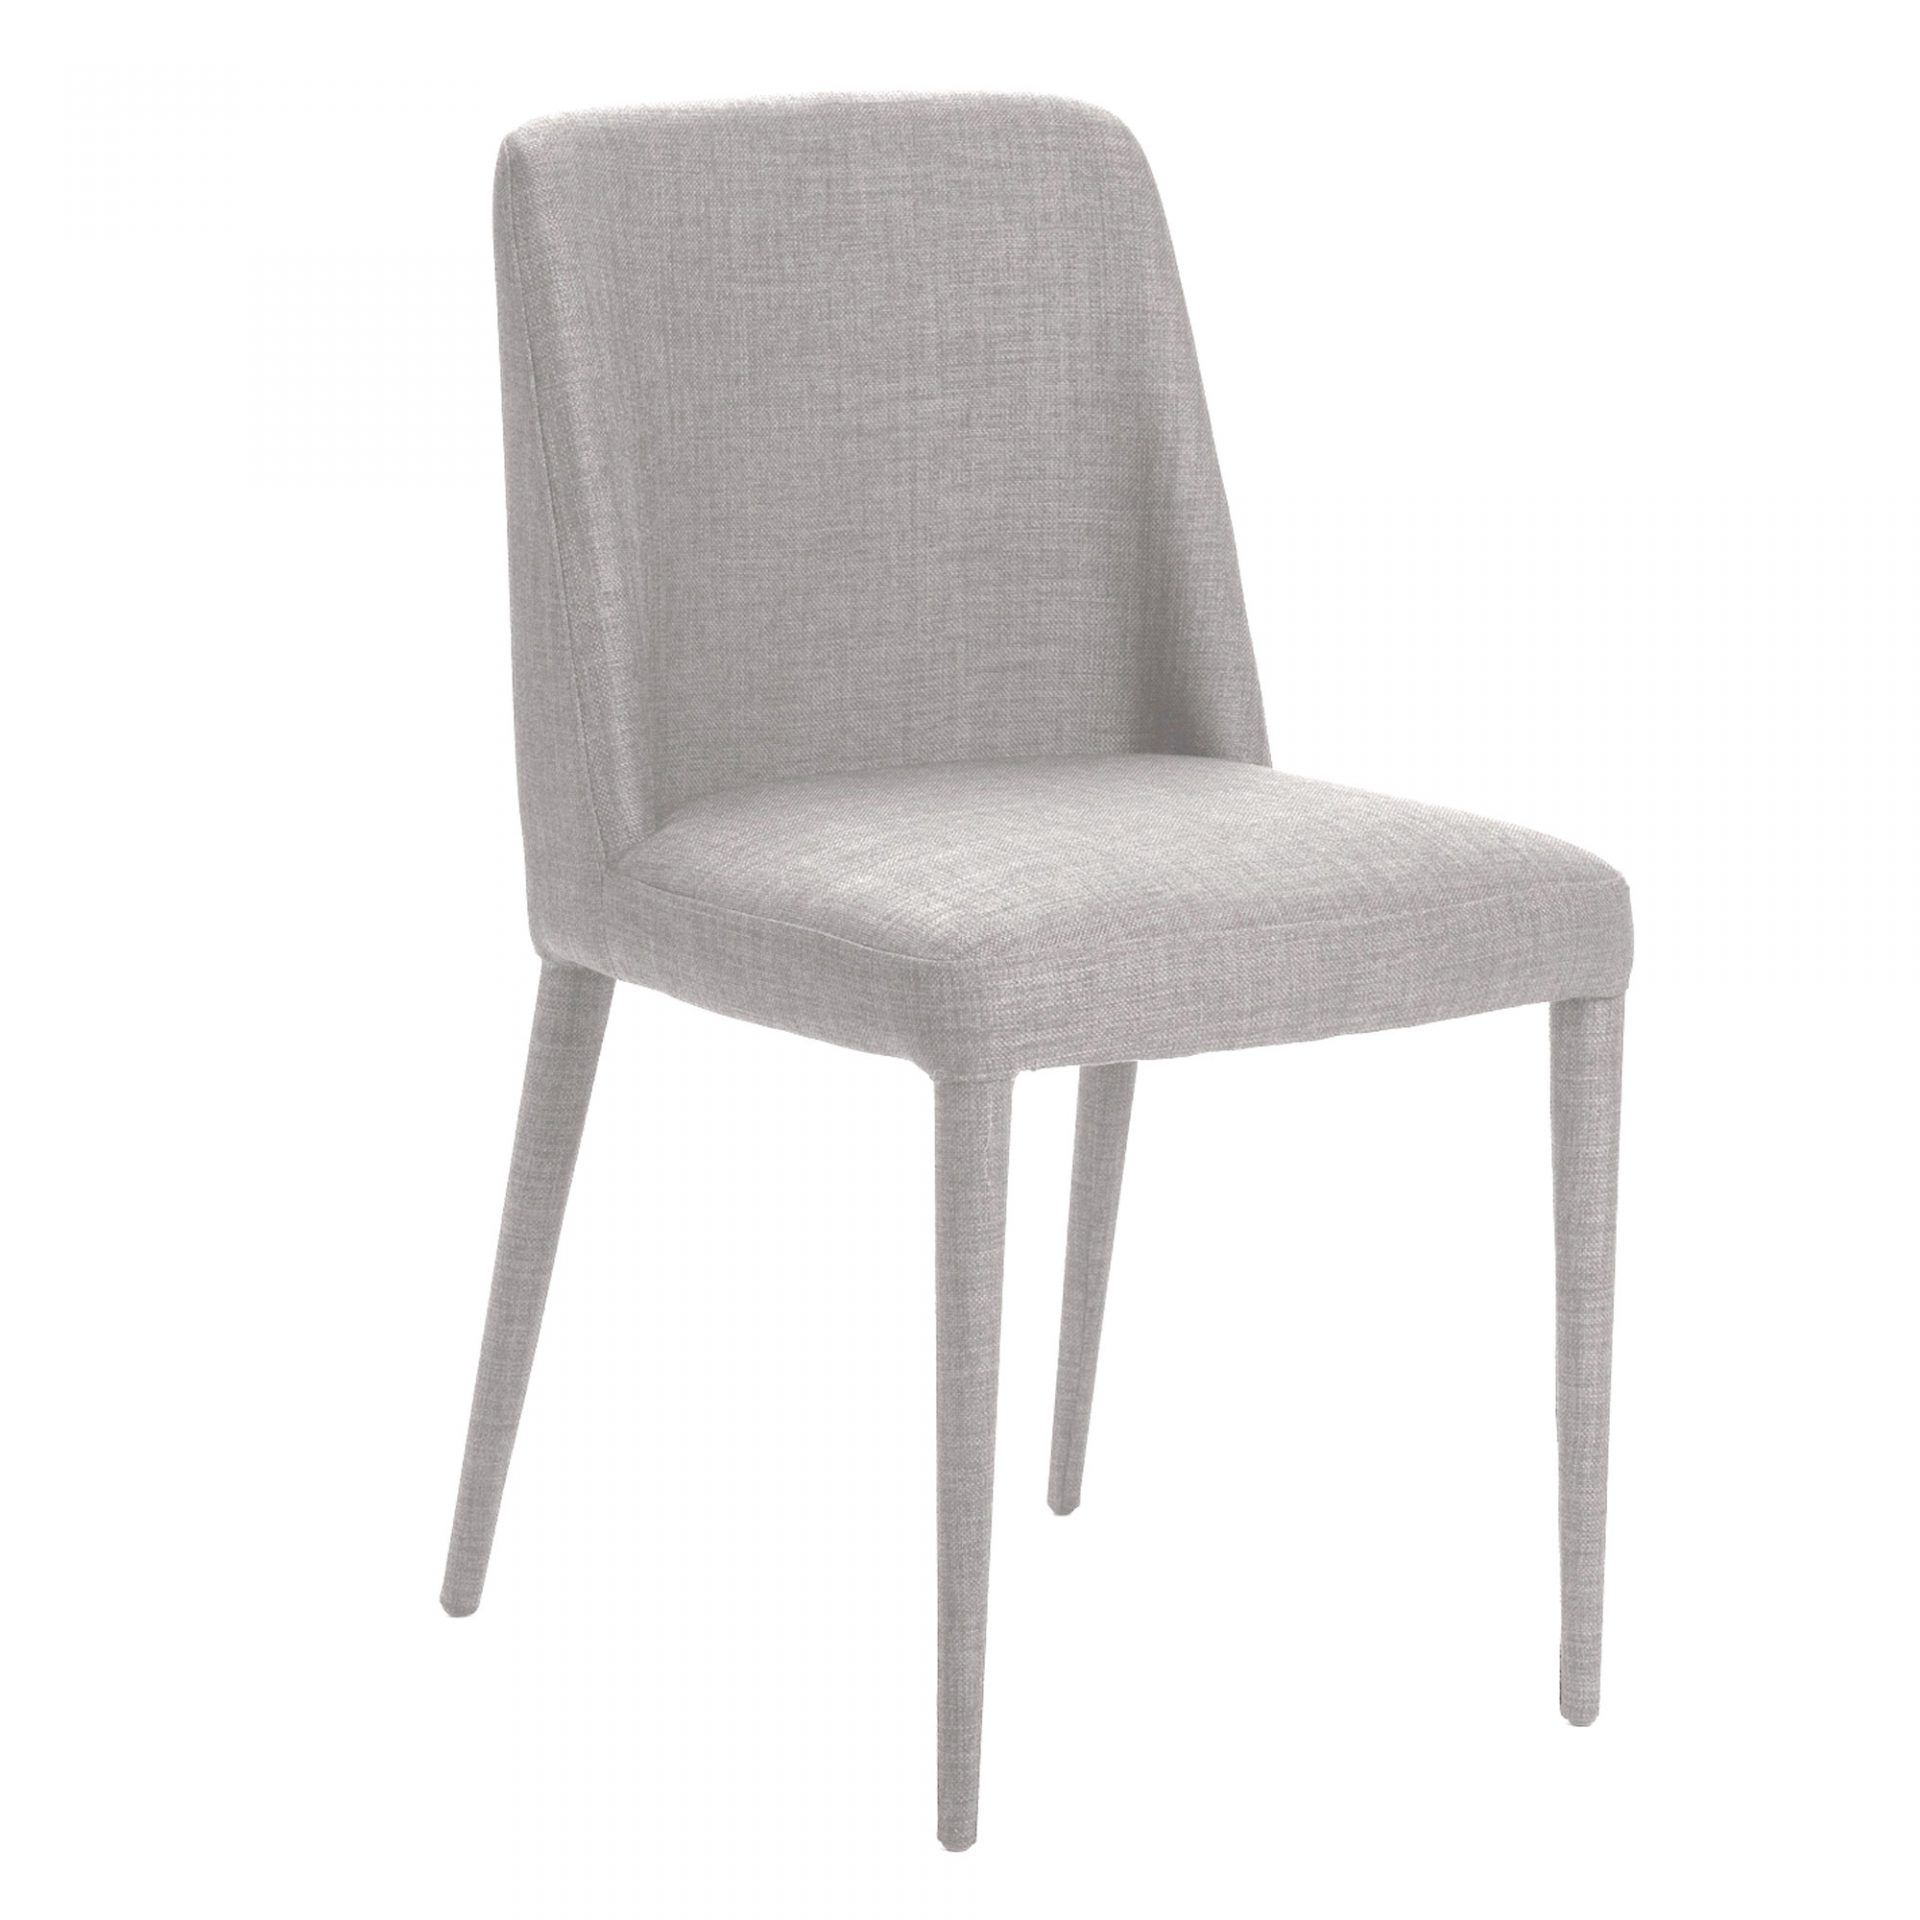 Cork Dining Chair Greym2  Dining Chairs  Moe's Wholesale  11 Fascinating Wholesale Dining Room Chairs Decorating Design